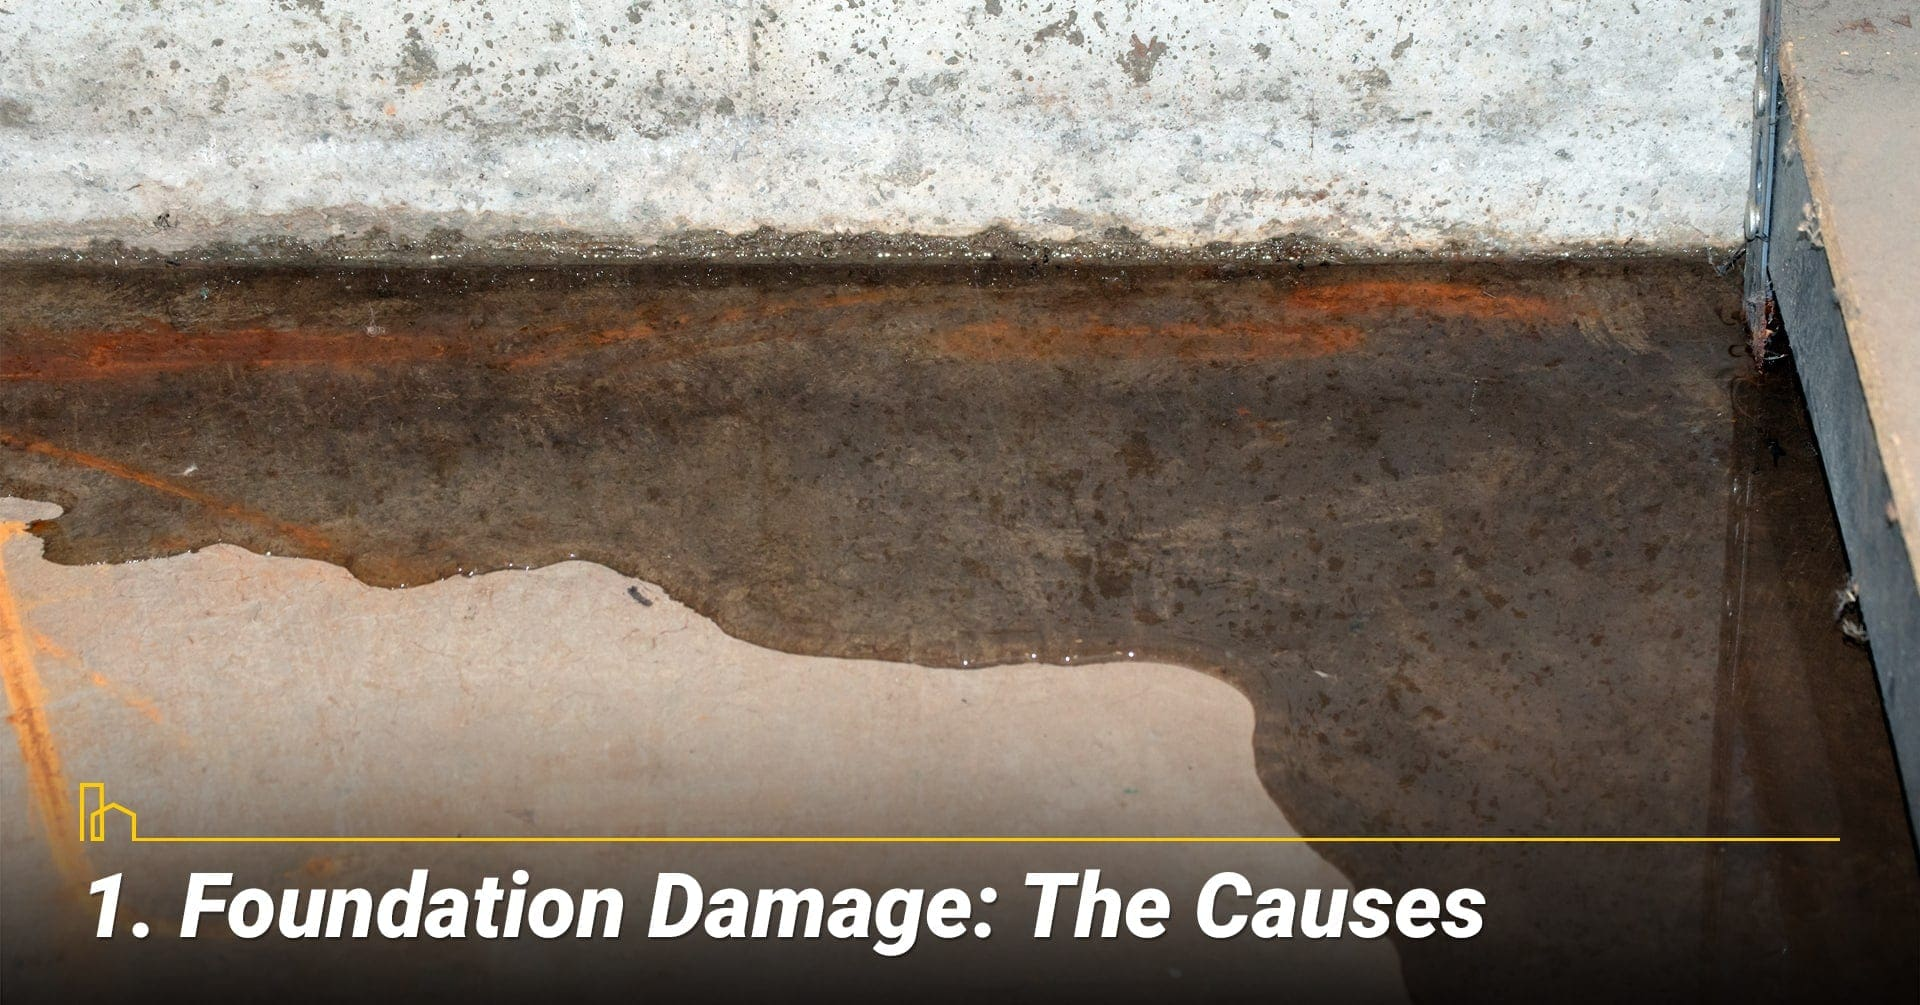 Foundation Damage: The Causes, look for the trouble spot